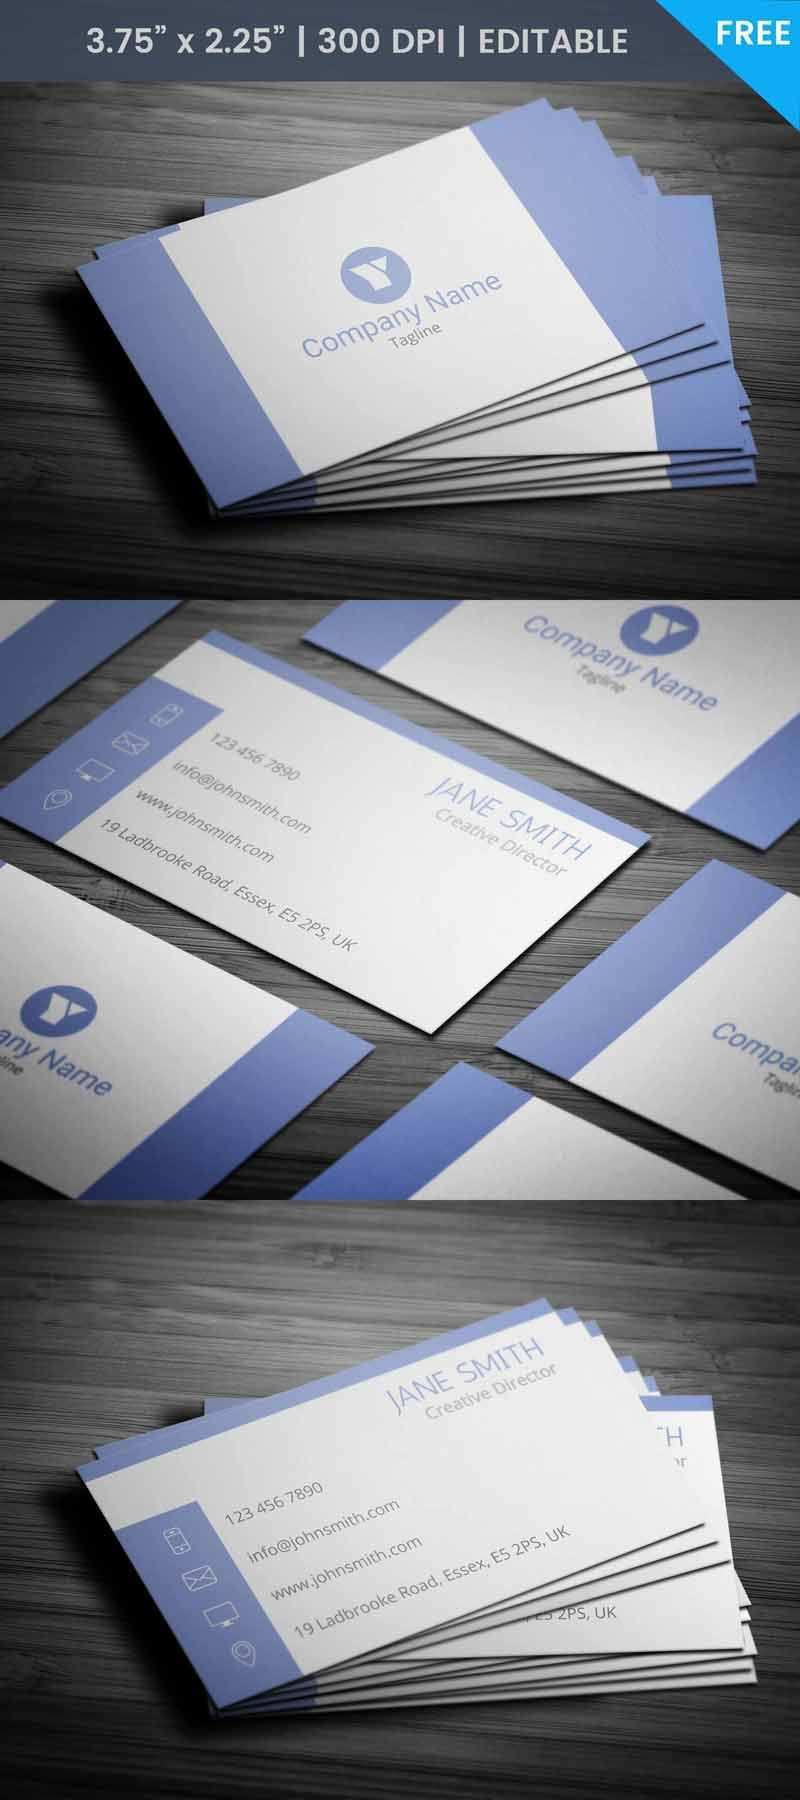 57 Customize Our Free Business Card Template Free Uk Download for Business Card Template Free Uk